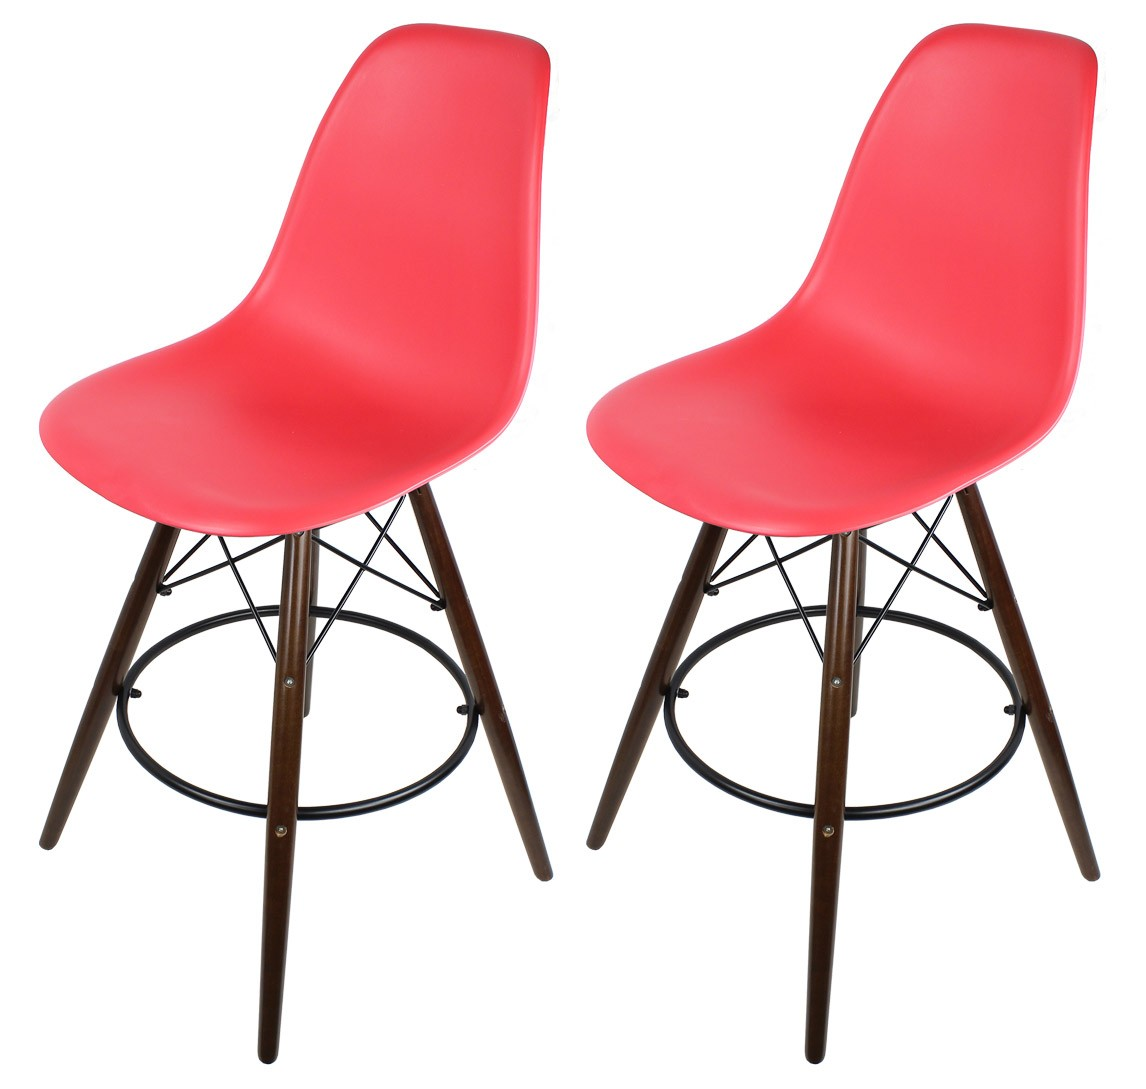 2 X Red Eames Style DSW Bar Stool with Dark Walnut Wood  : eames stools red dark legg1 from www.cbath.com size 1146 x 1089 jpeg 110kB